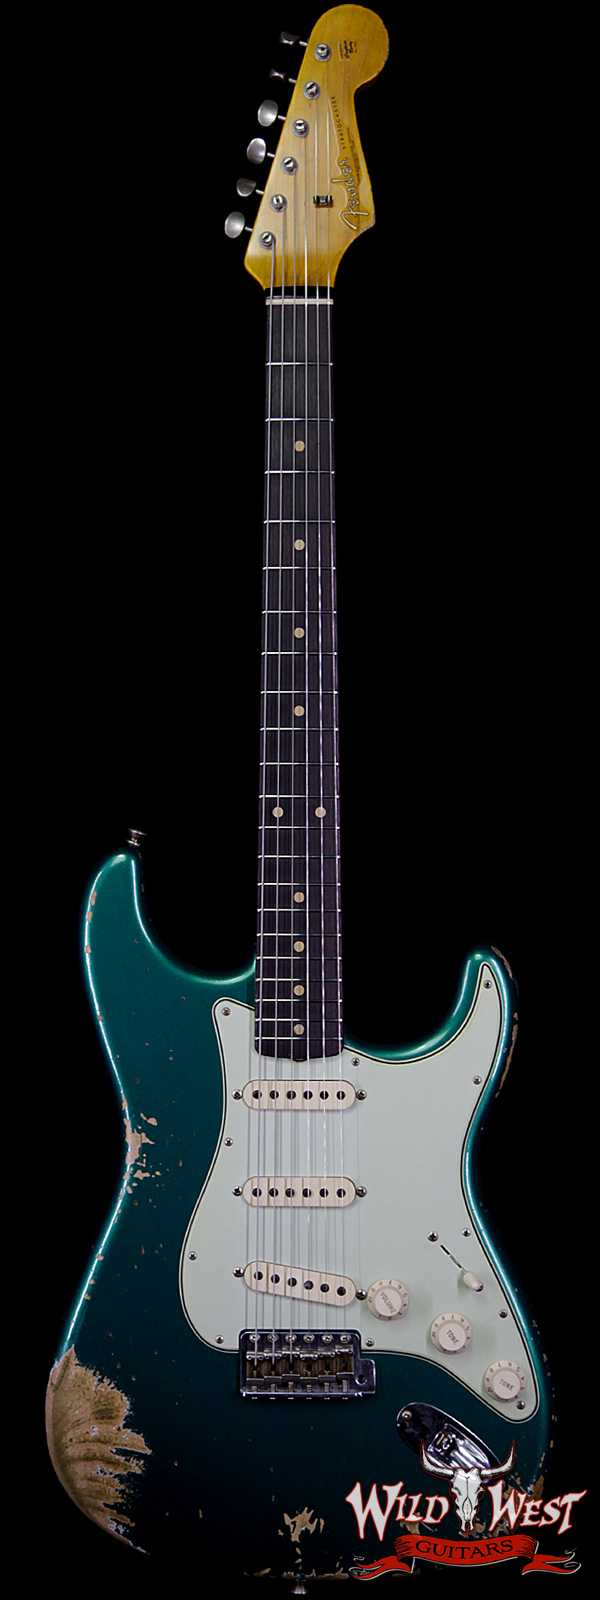 Fender Custom Shop 1961 Stratocaster Heavy Relic AAA Rosewood Board British Racing Green